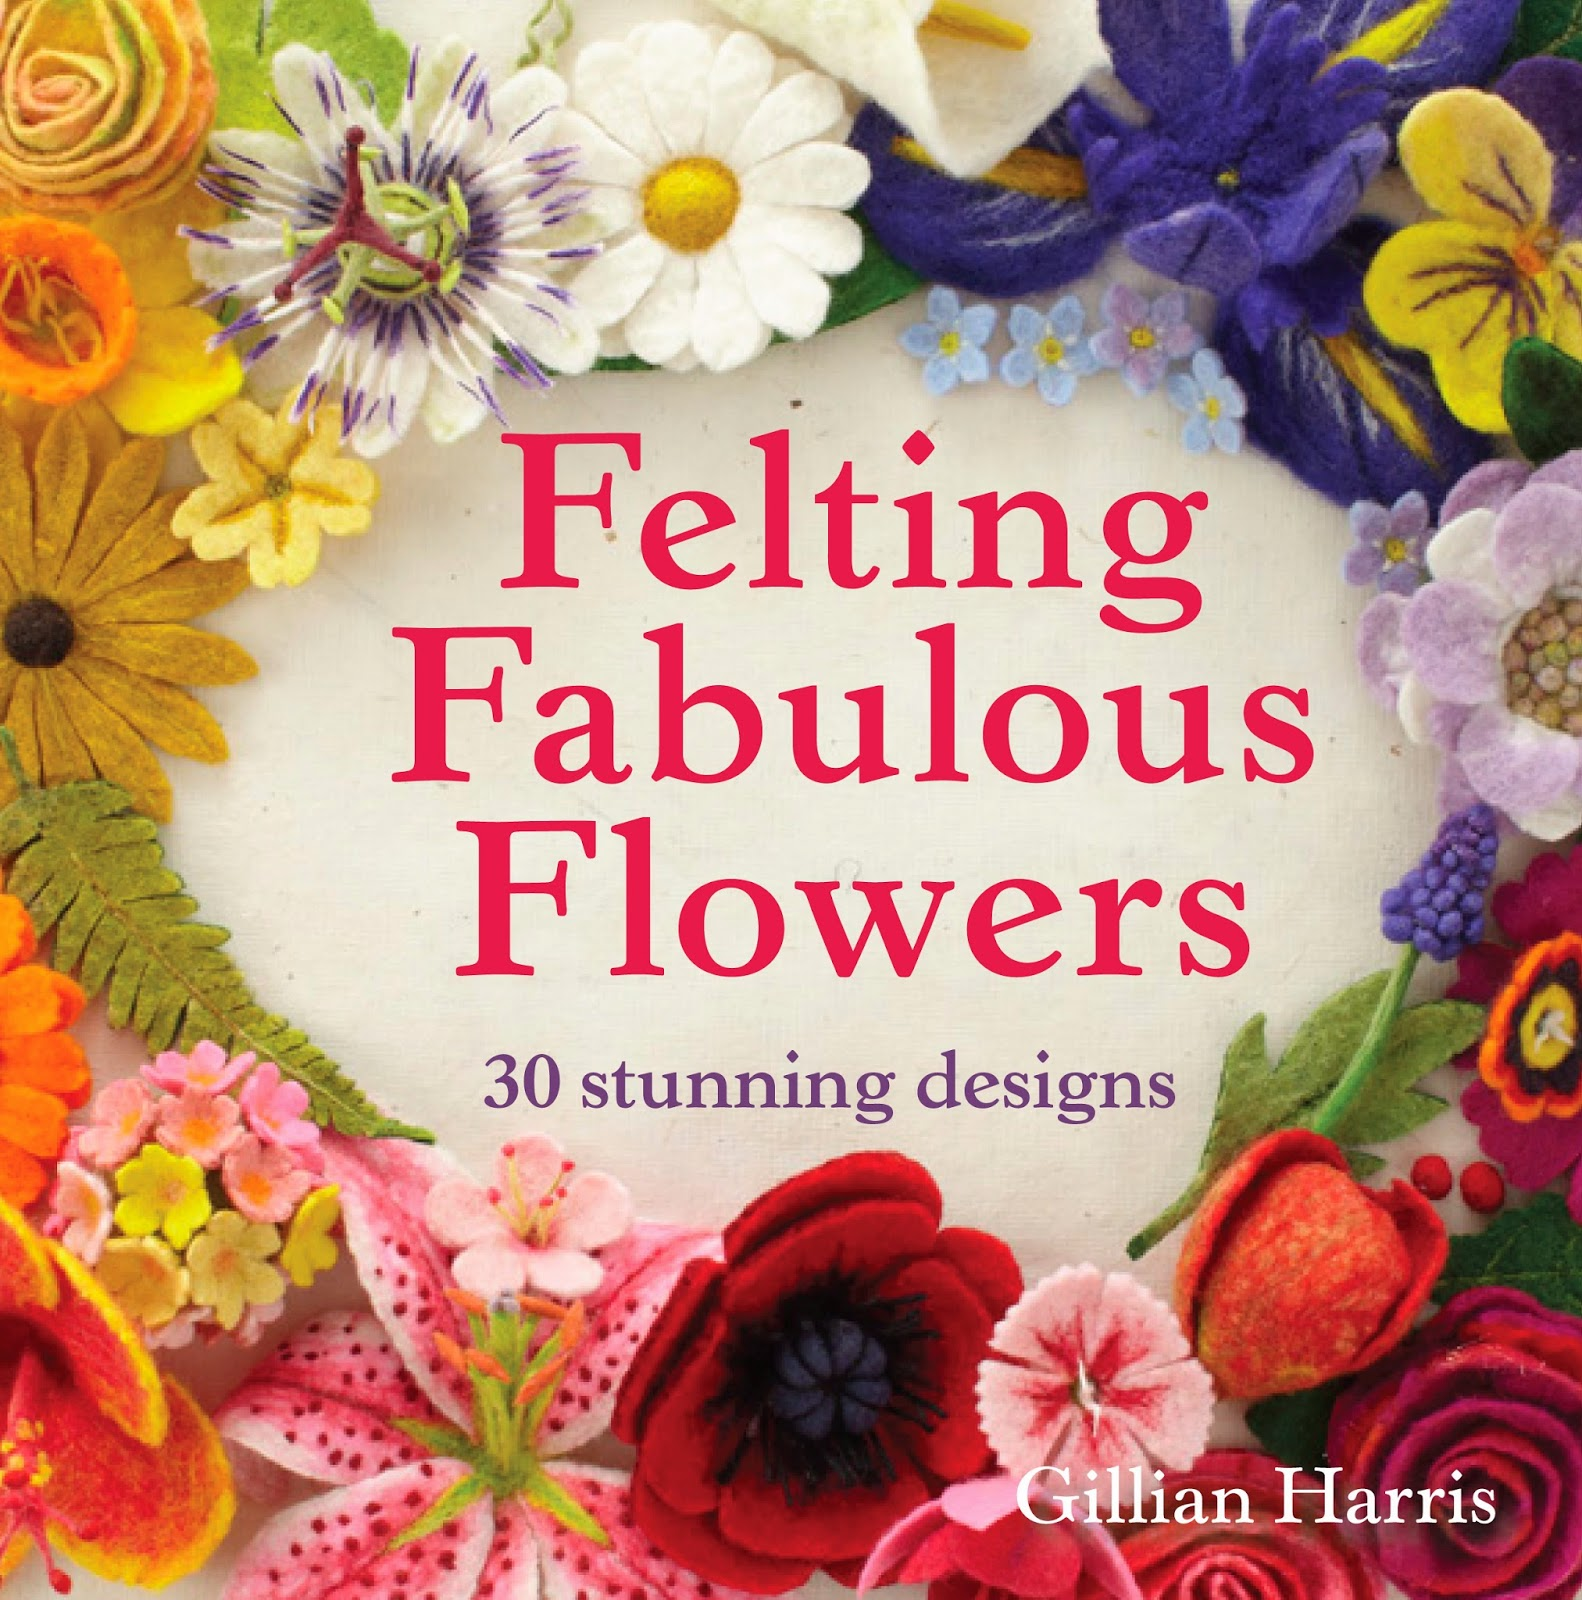 Felting Fabulous Flowers by Gillian Harris